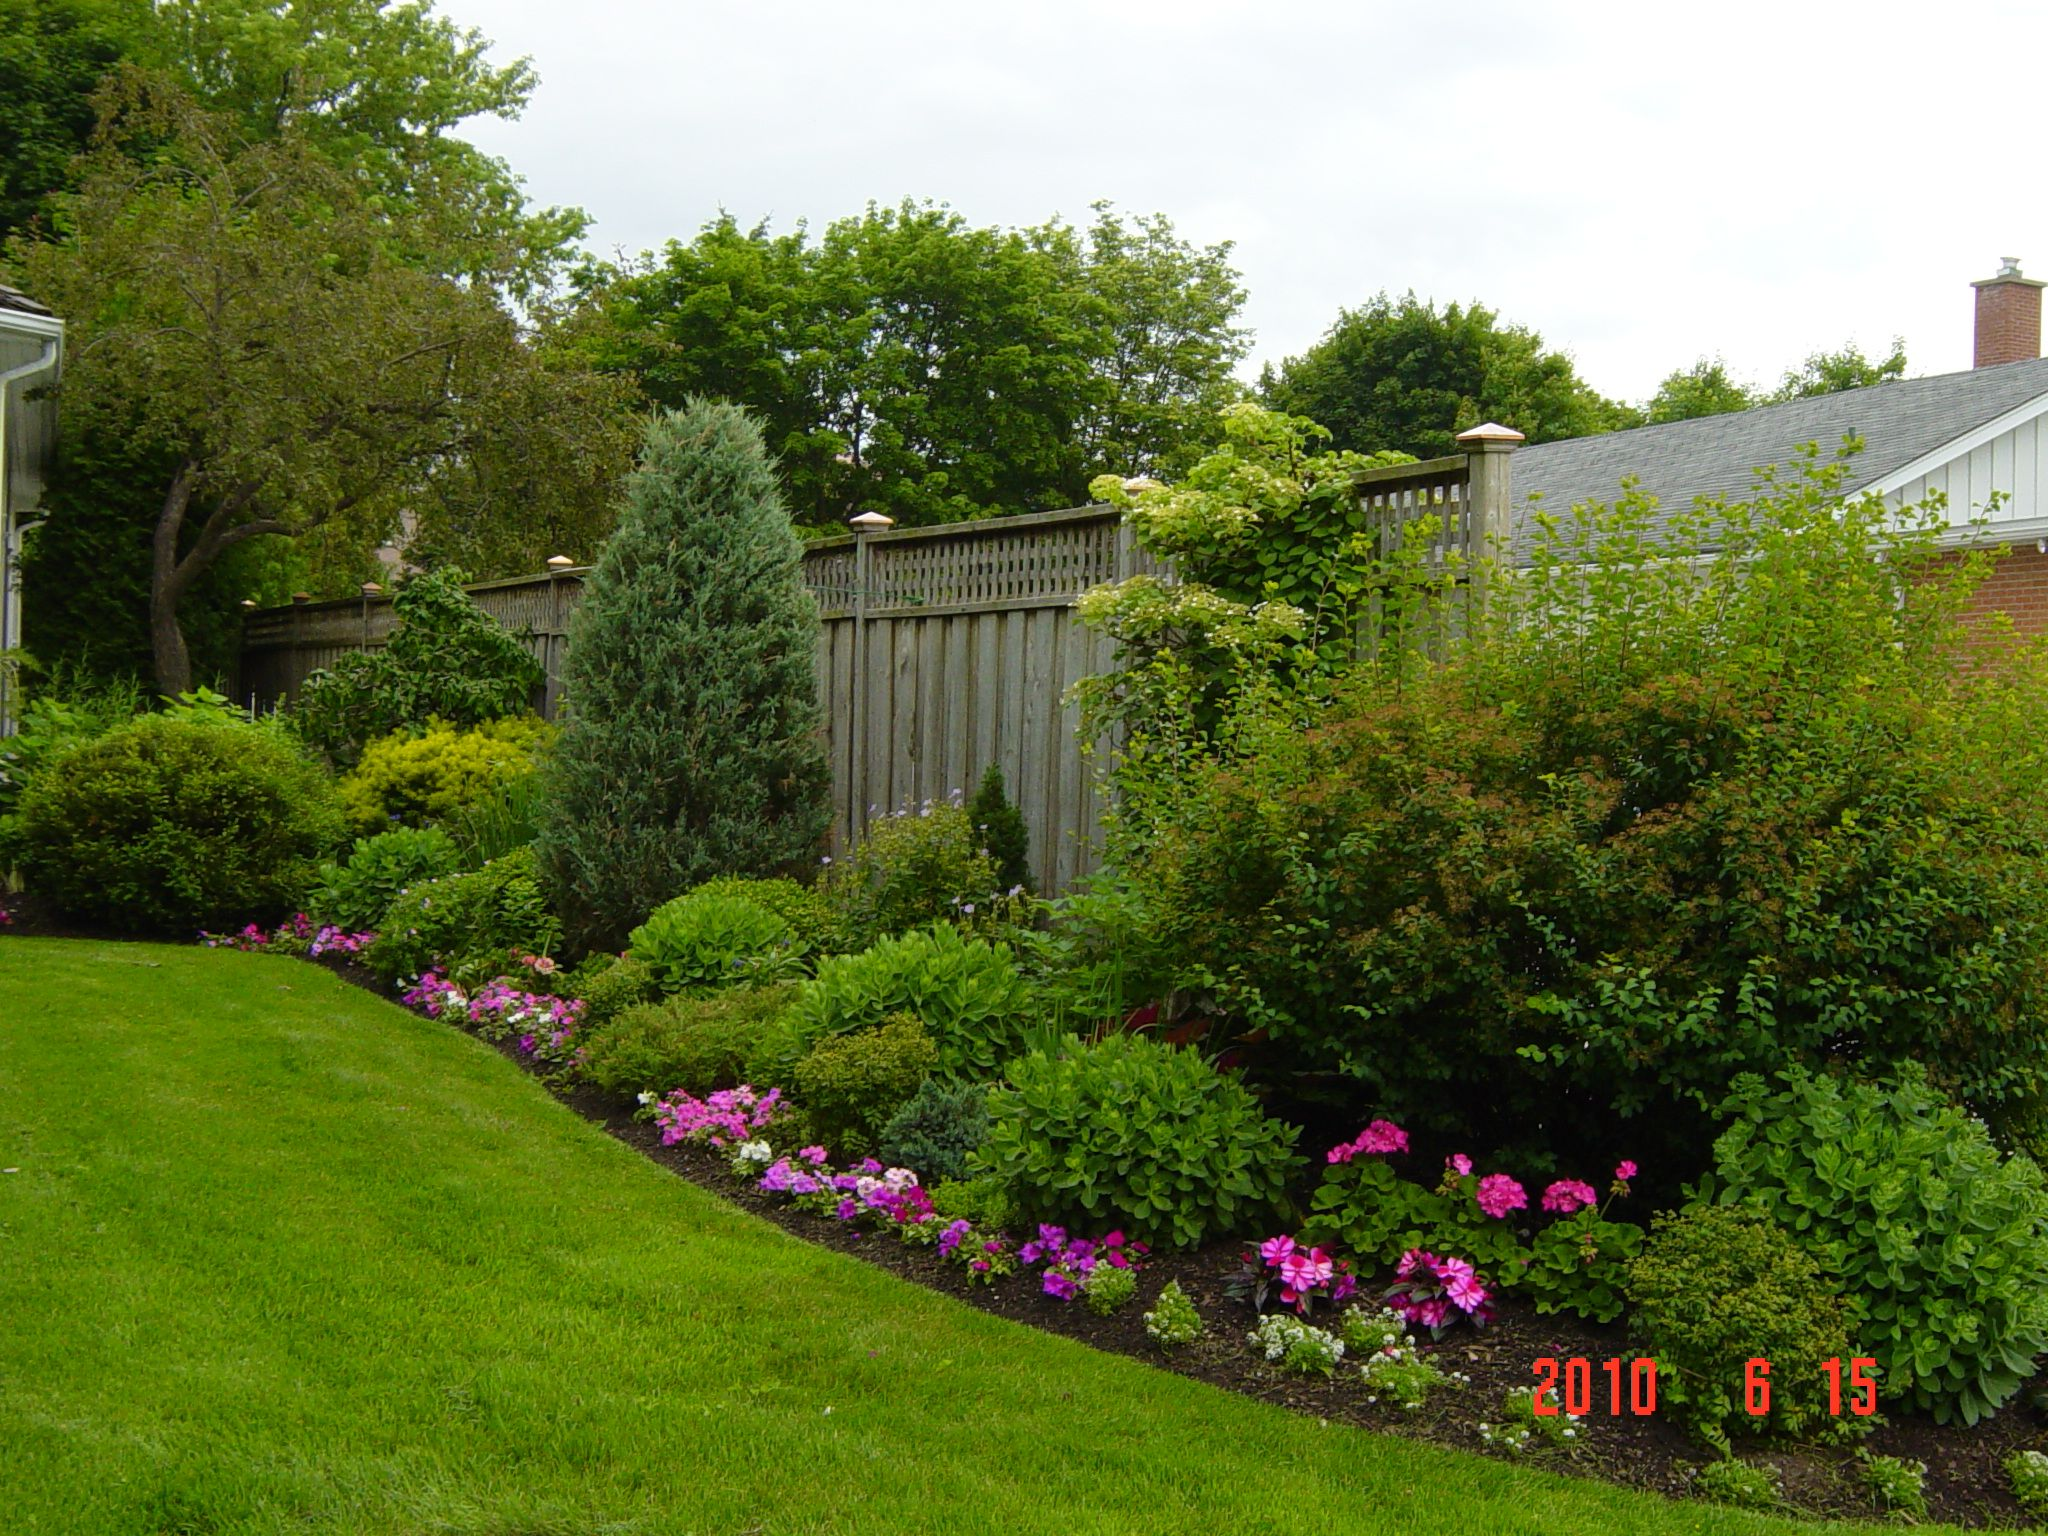 538 best fence plantings for privacy and architecture images on 538 best fence plantings for privacy and architecture images on pinterest backyard ideas fence ideas and garden fences baanklon Images